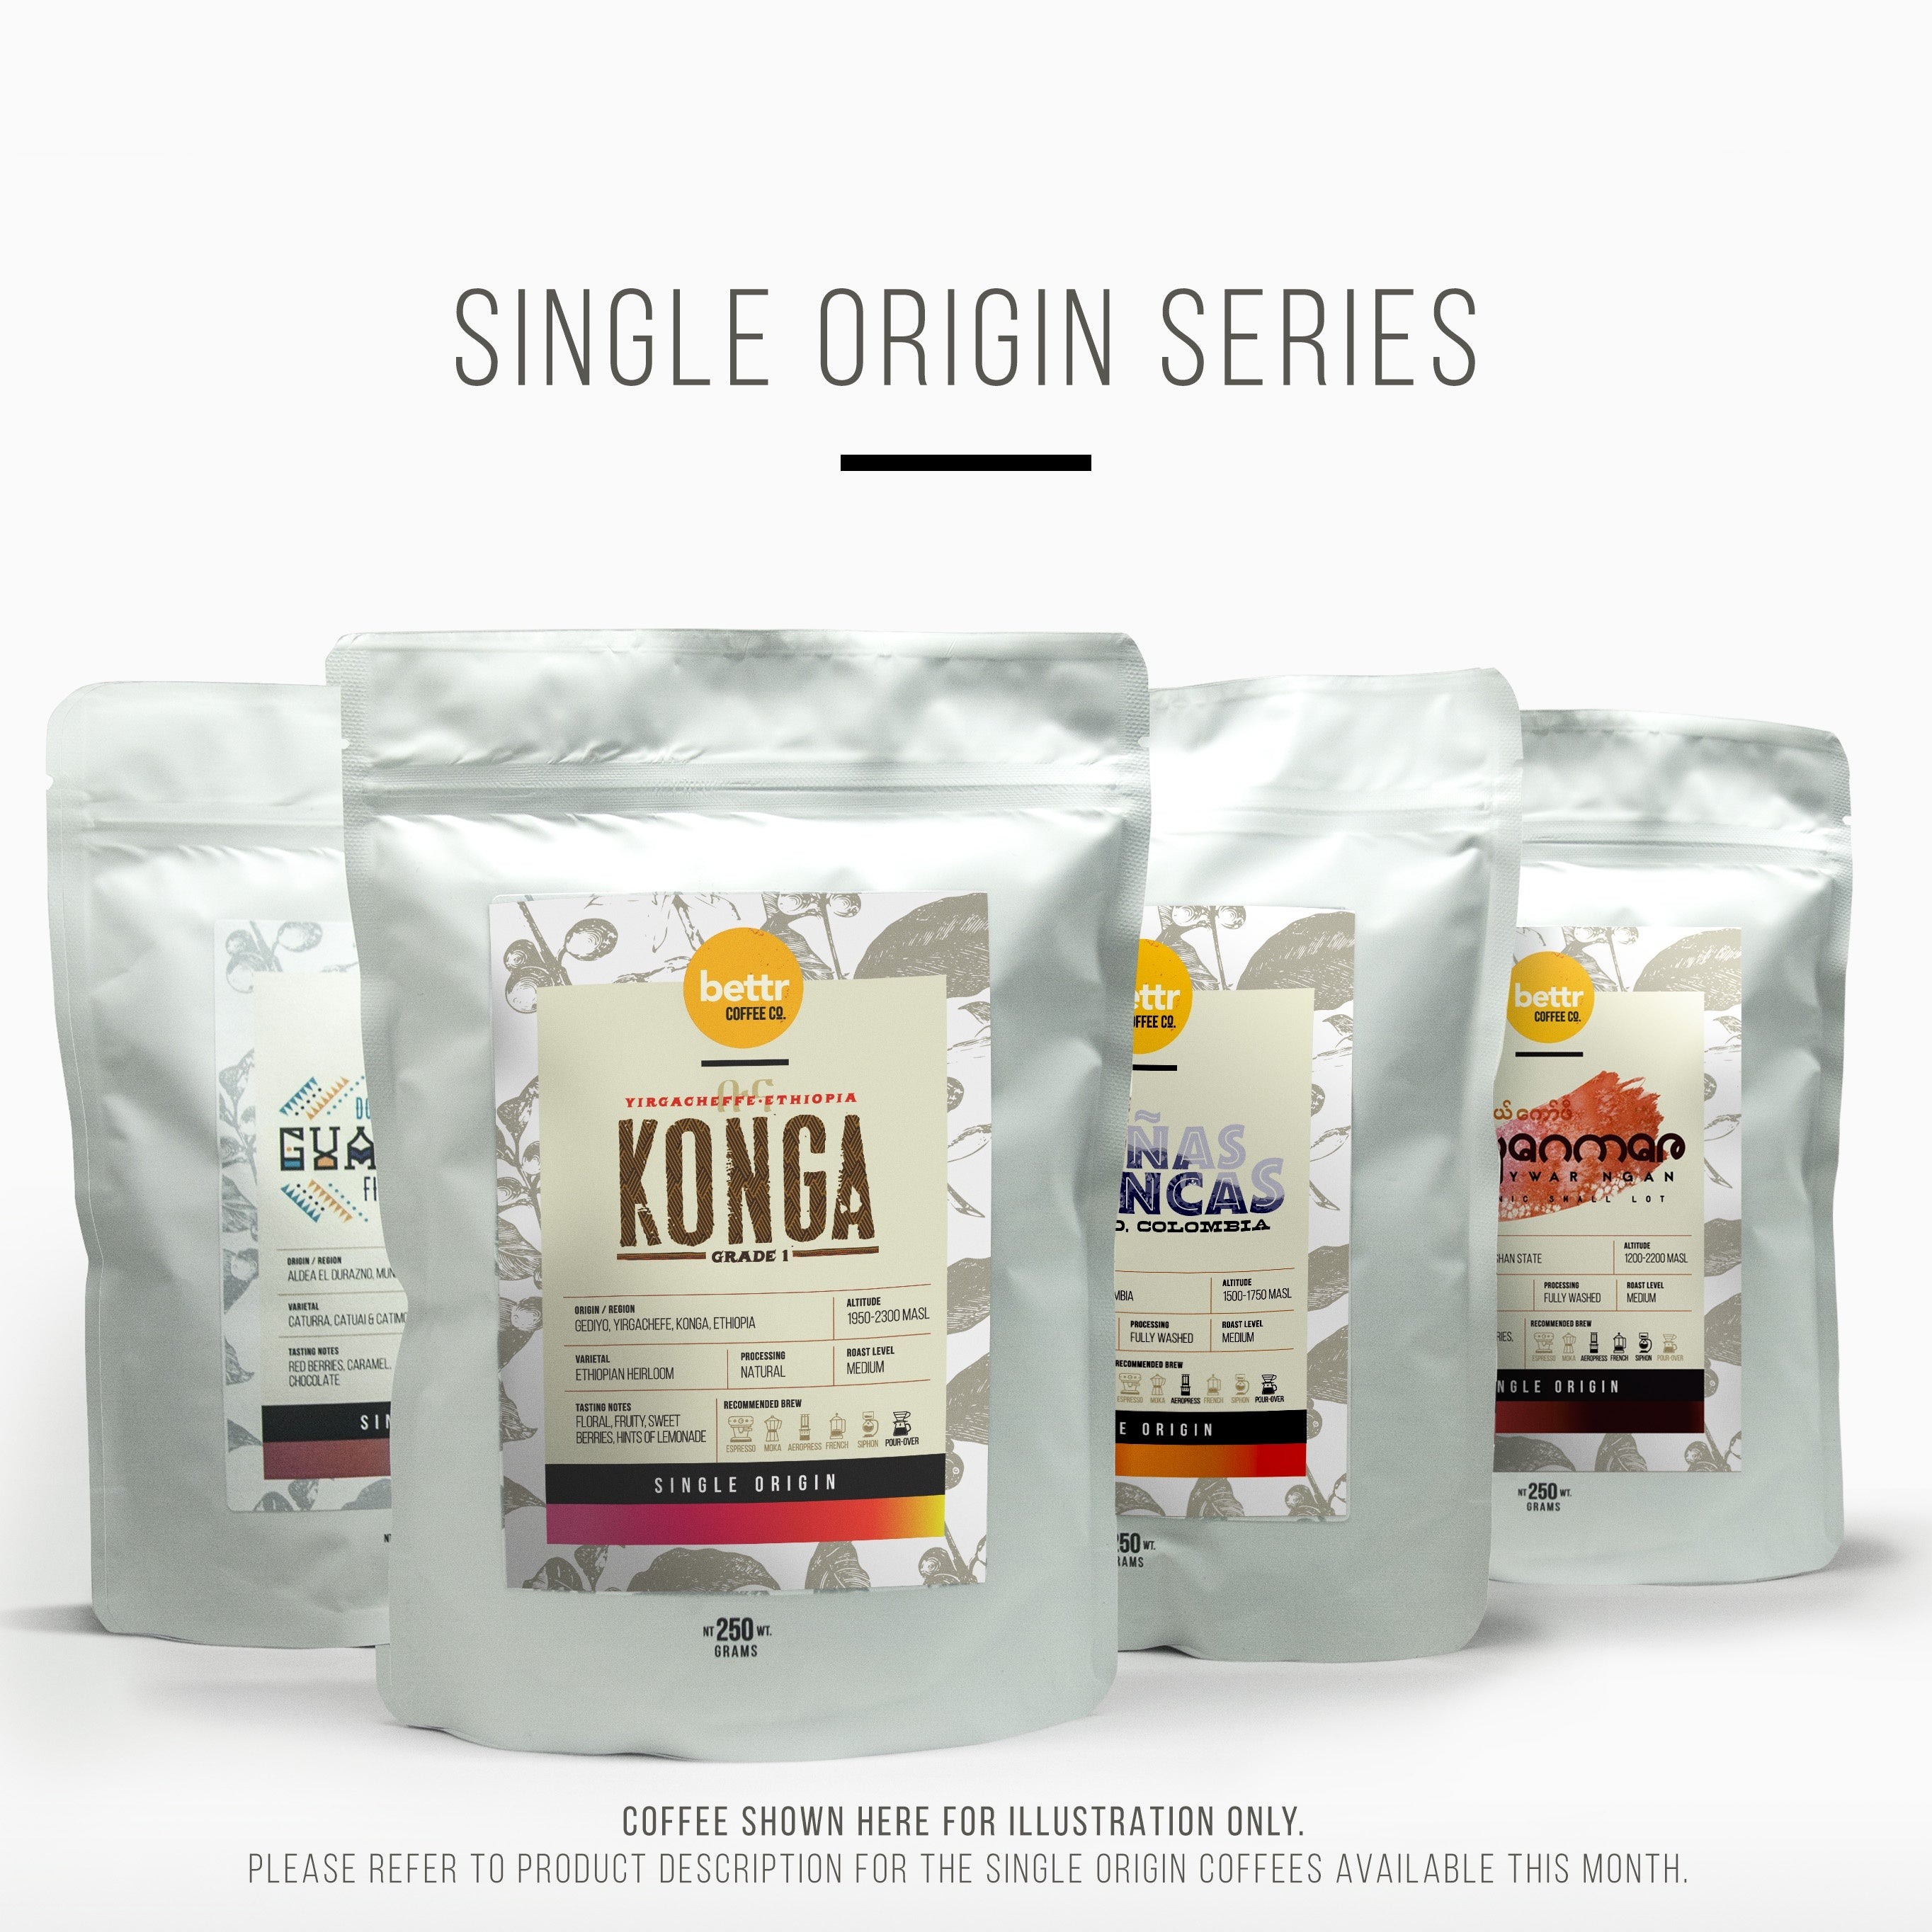 4 Bag Subscription - Single Origin Series